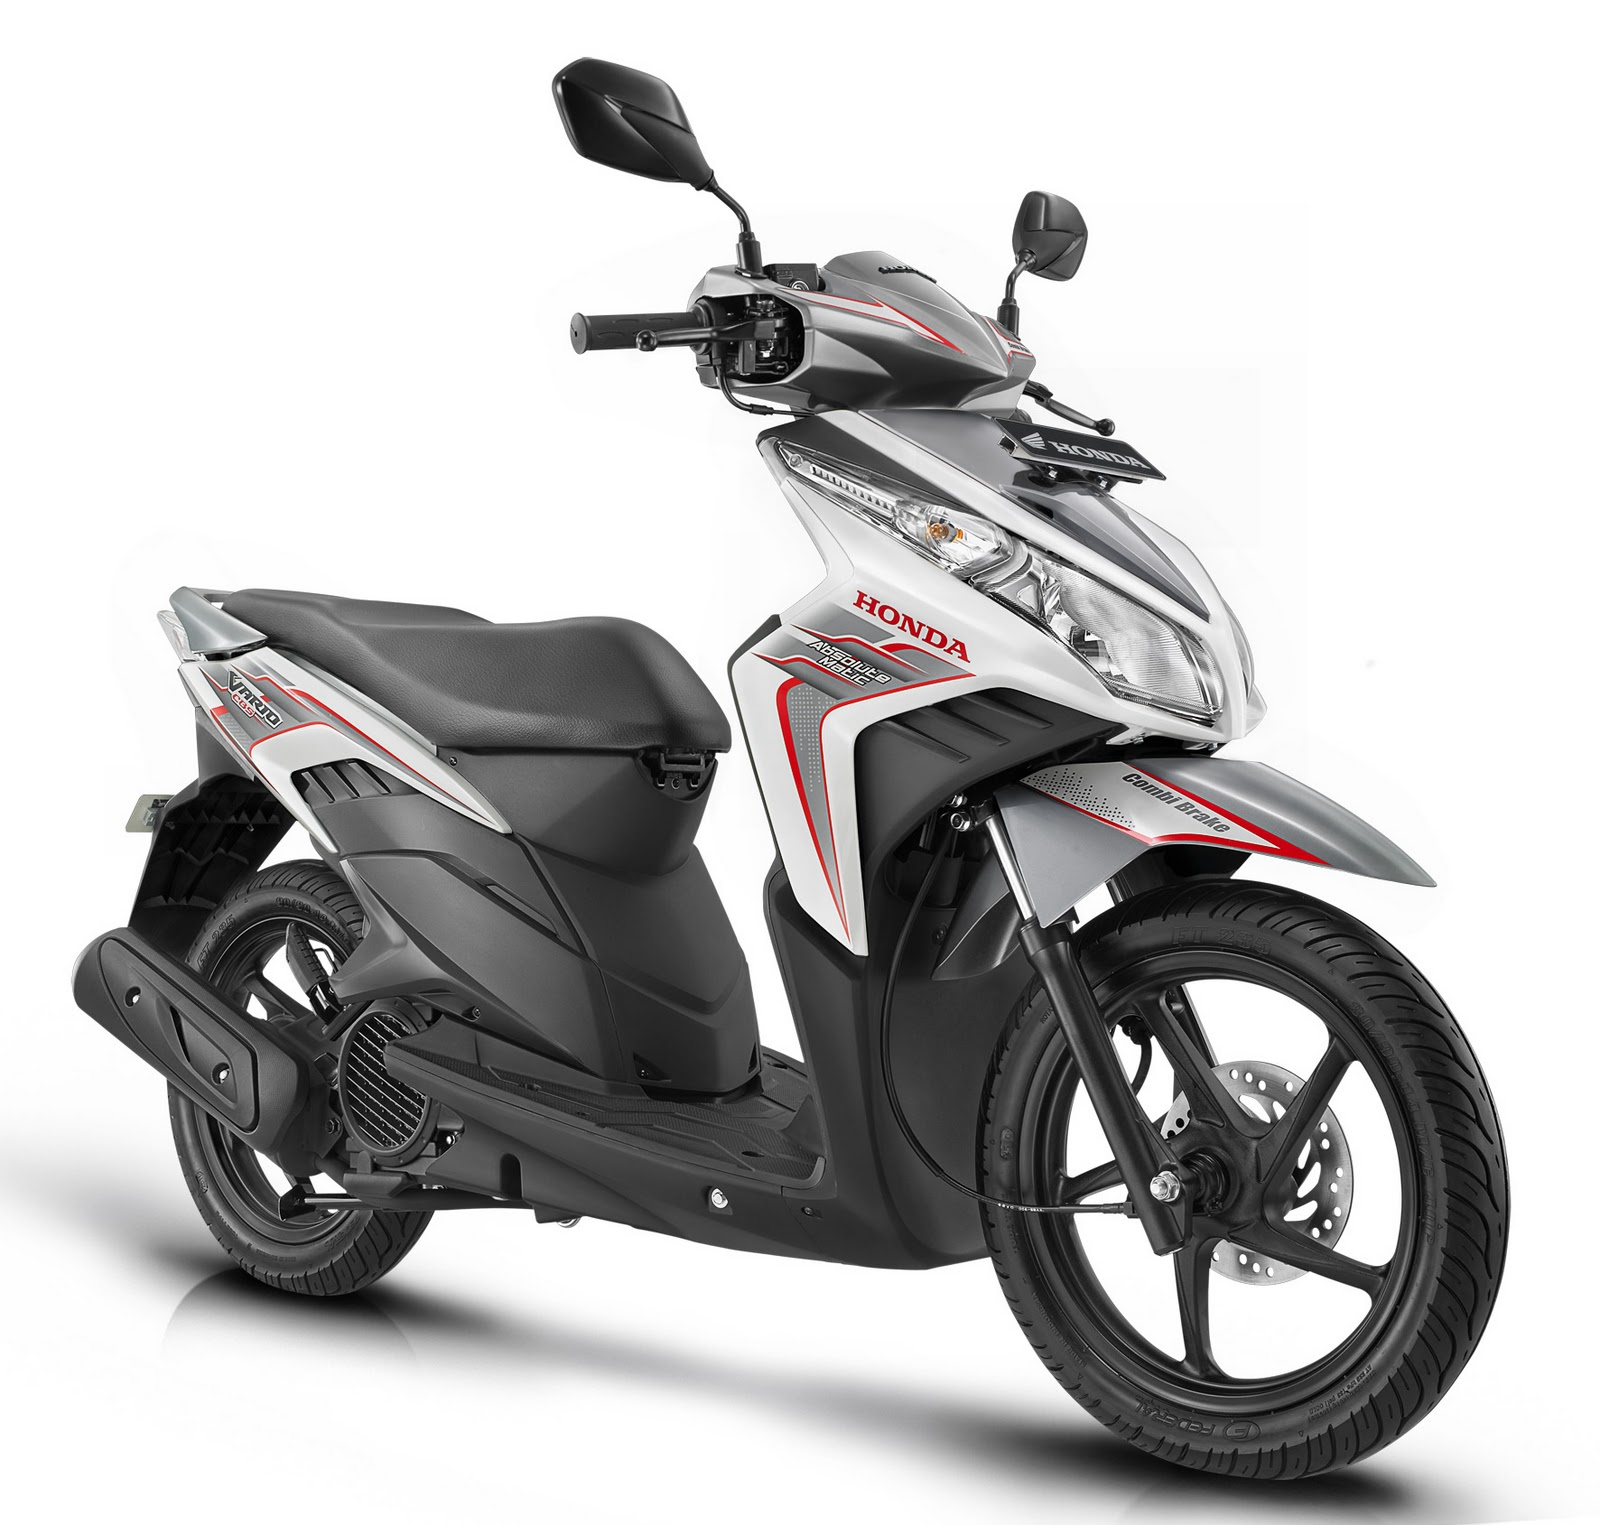 Comparison of Motorcycle Features, Suzuki Hayate 125 vs